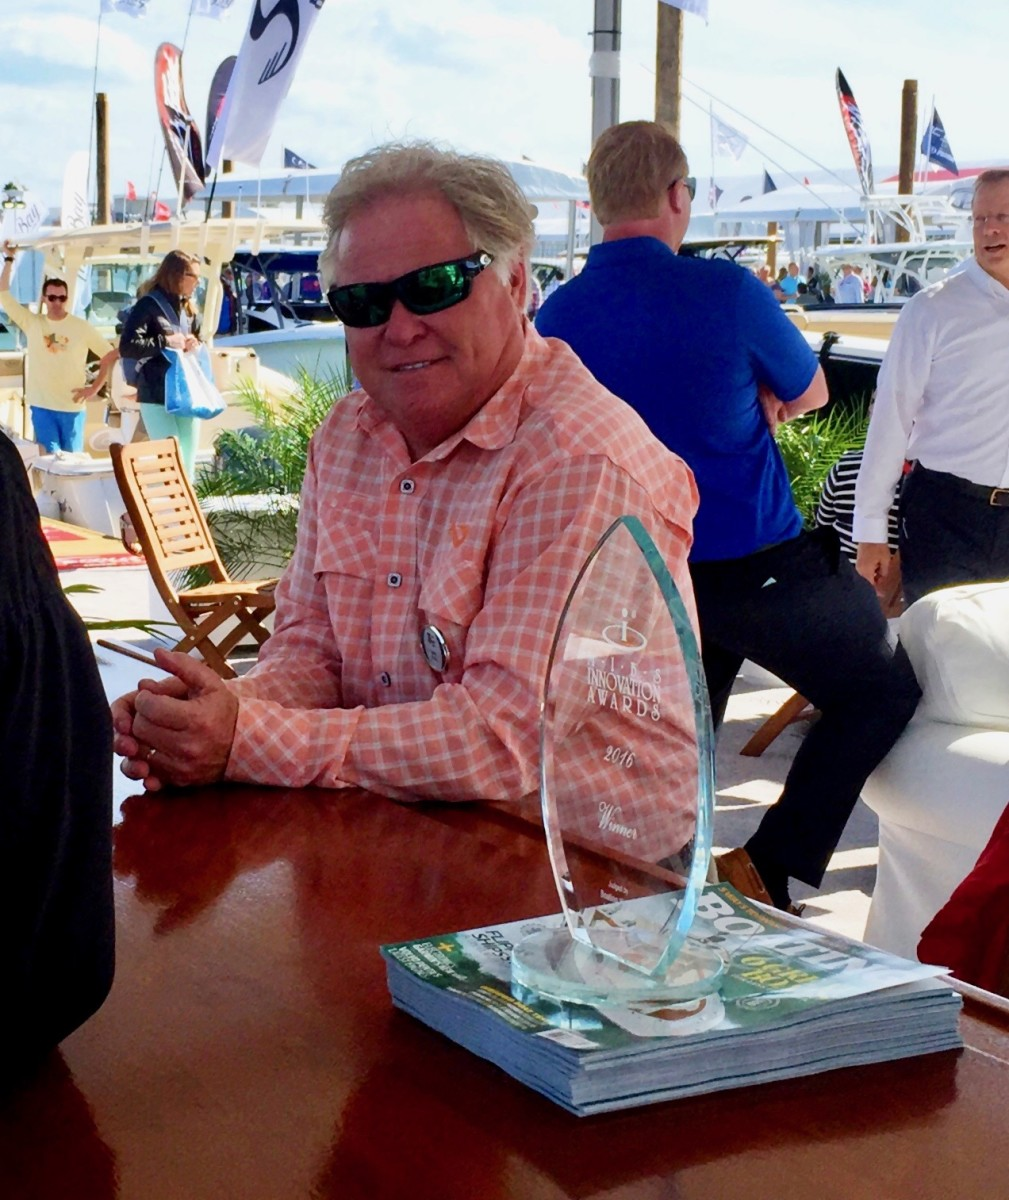 Scout Boats founder and CEO Steve Potts, shown here at the Miami International Boat Show in 2016, unveiled a plan to pass tax-reform benefits on to hourly employees.